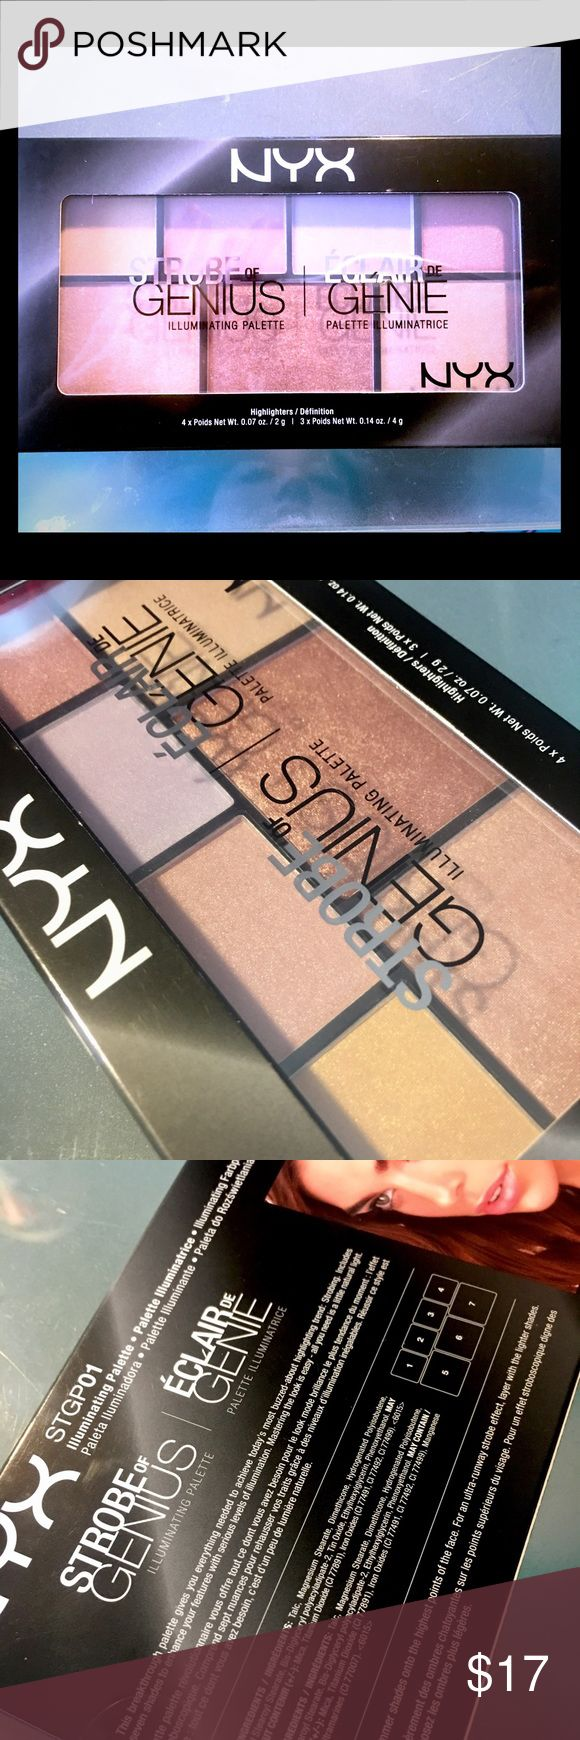 NYX Strobe of Genius Highlighter Palette NIB Authentic NYX Strobe of Genius Highlighting Palette Brand New in Box. Never opened. The swatches and open palette are my own. NYX Cosmetics Makeup